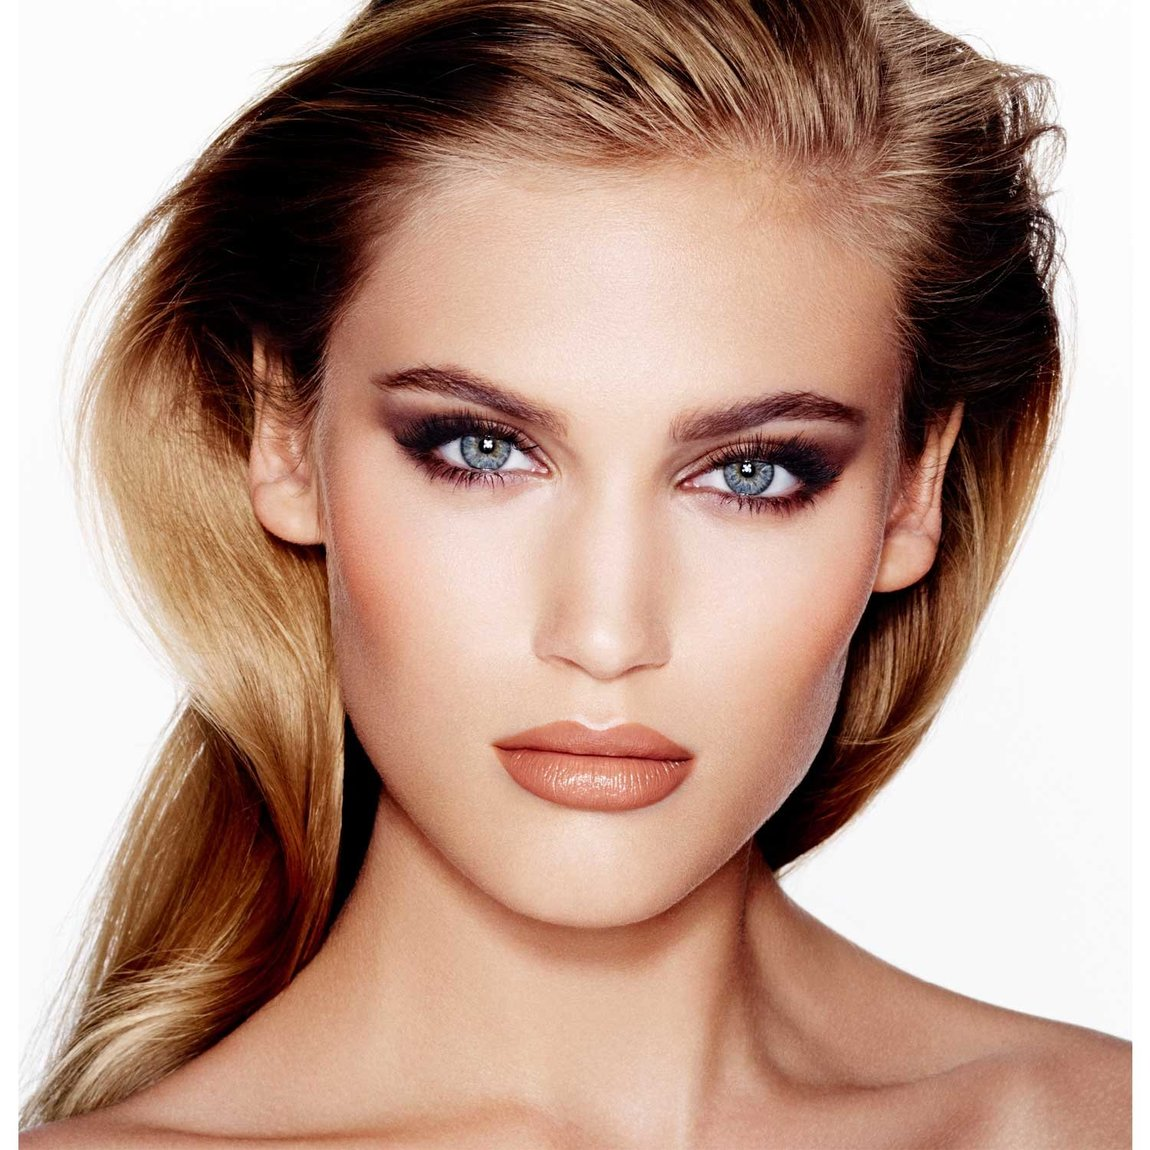 Charlotte Tilbury Get the Look The Sophisticate product smear.